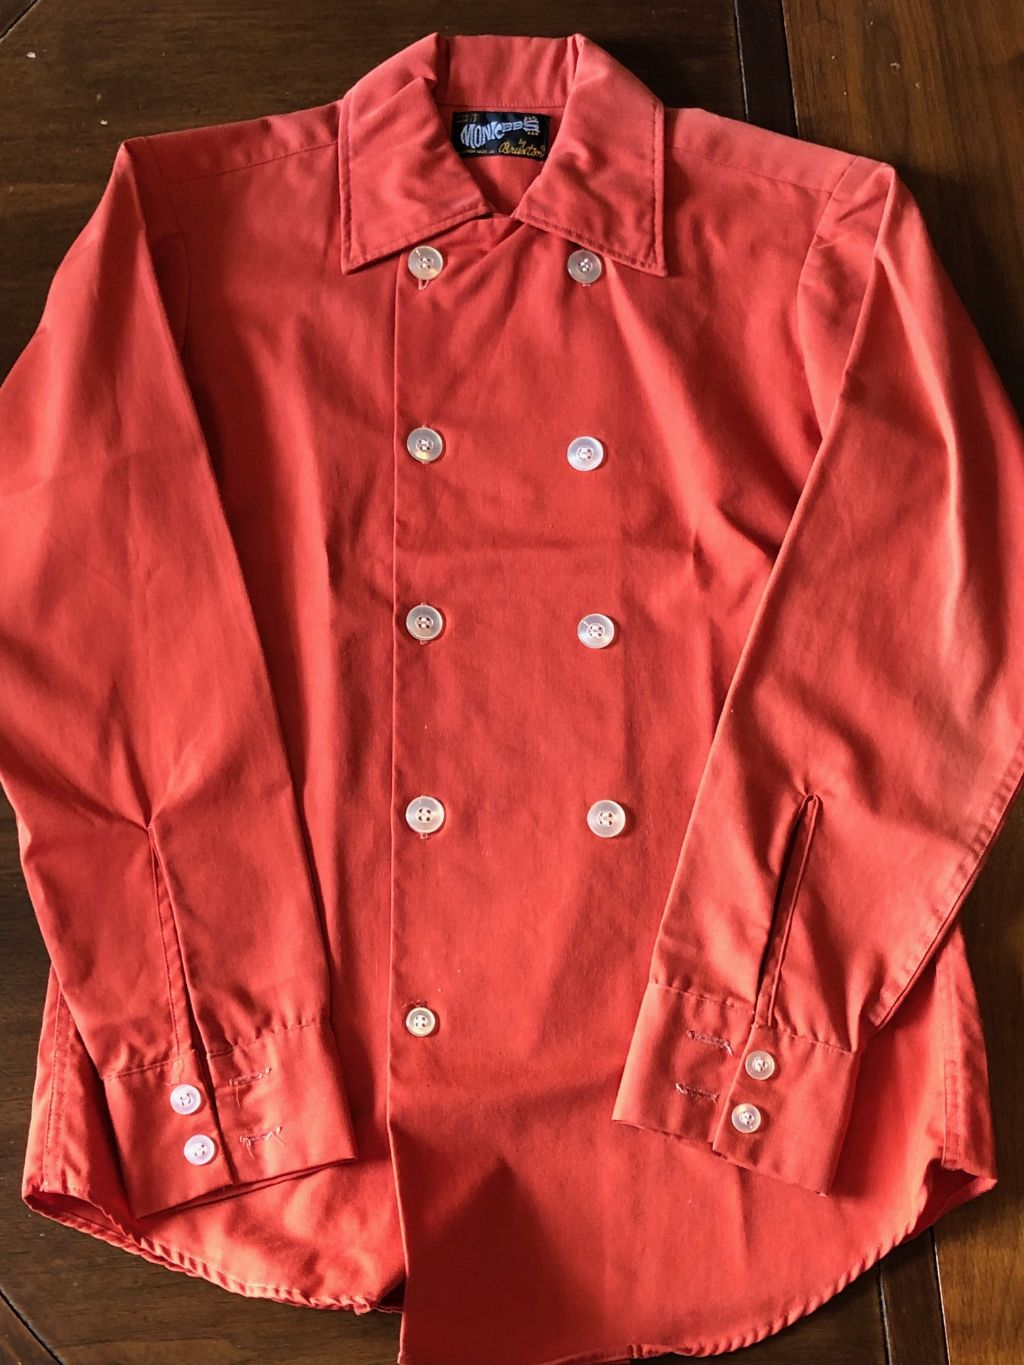 Monkees 8 button shirt Bruxton